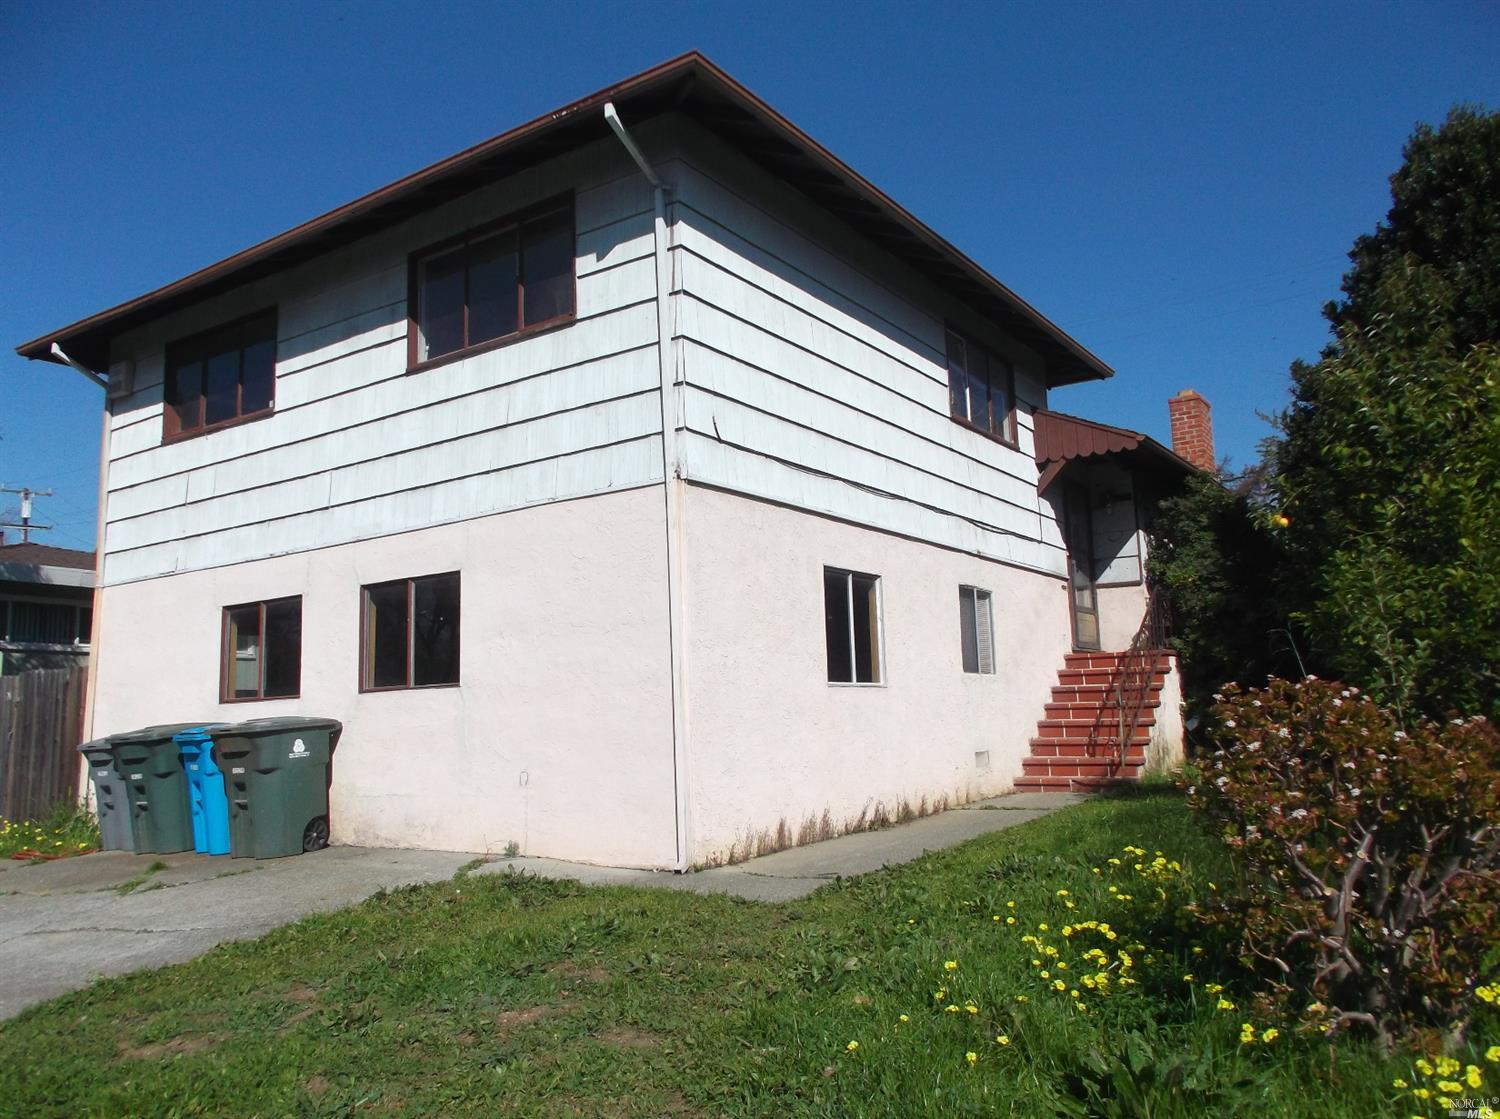 This Property is an Investor's Dream Located in a Great Neighborhood... 3BD/2BA House on a Nice Size